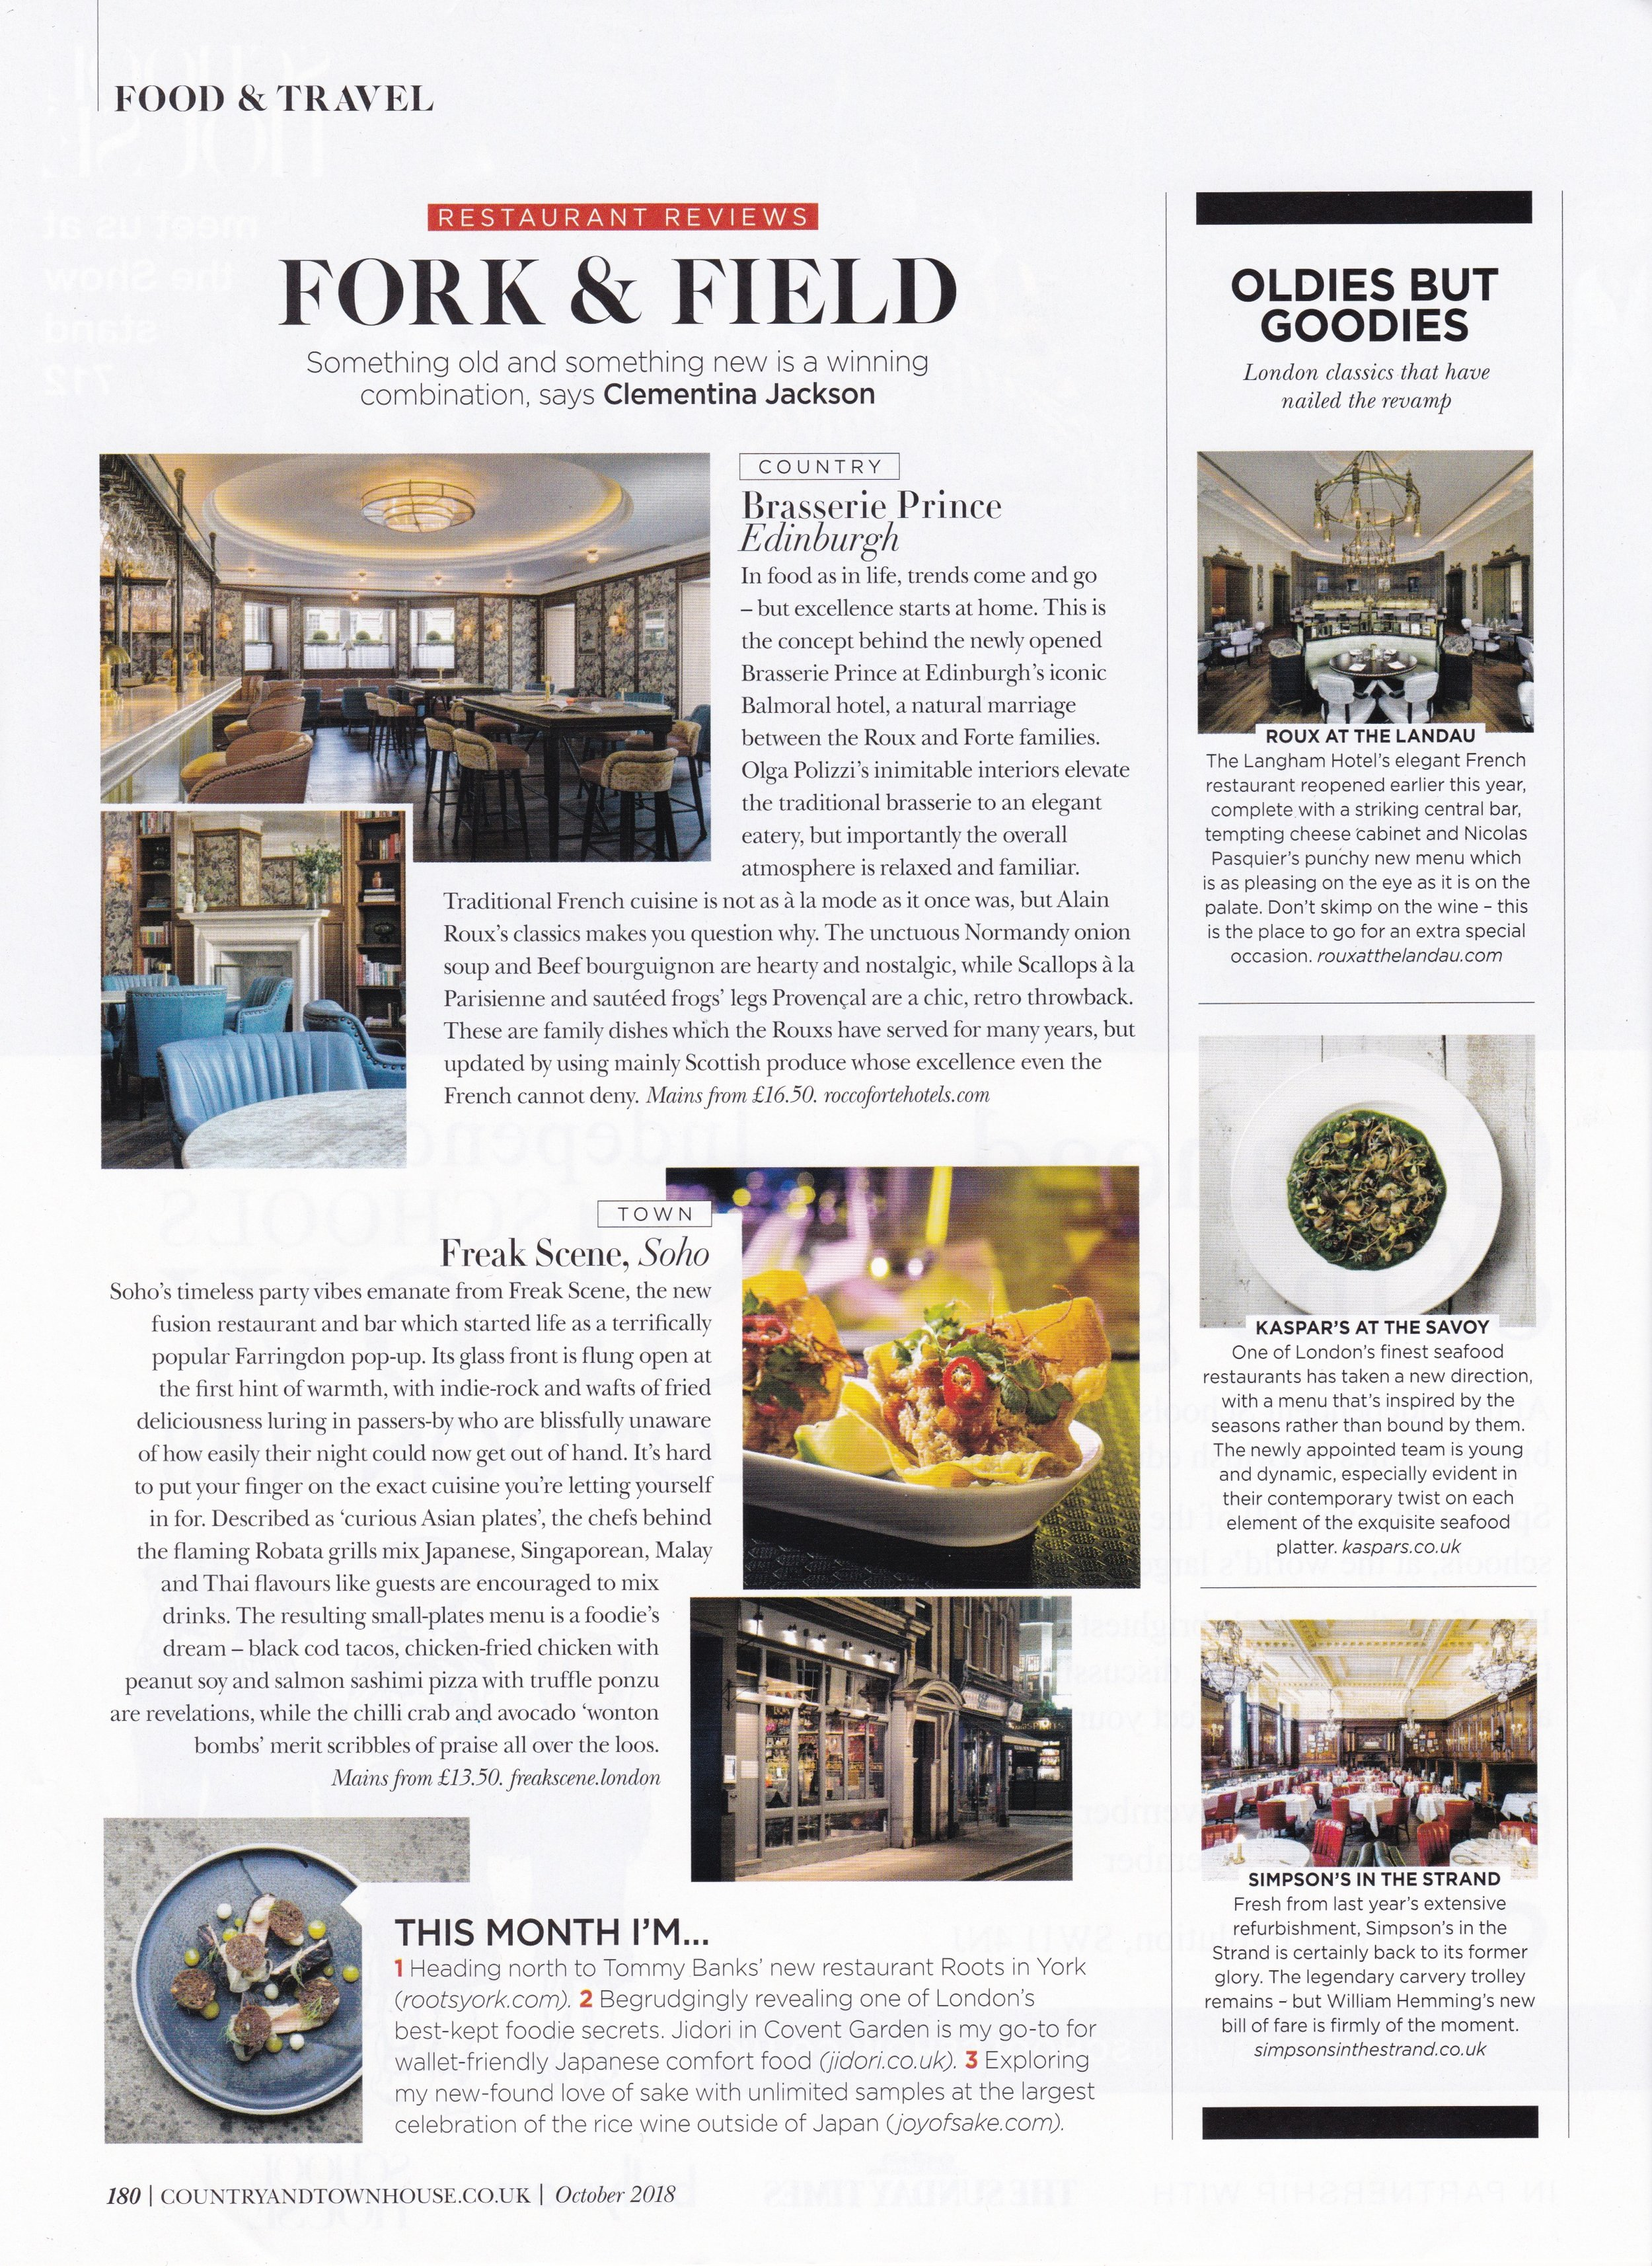 Country & Townhouse - October 2018 - Feature - Kaspar's At The Savoy.jpeg.jpeg